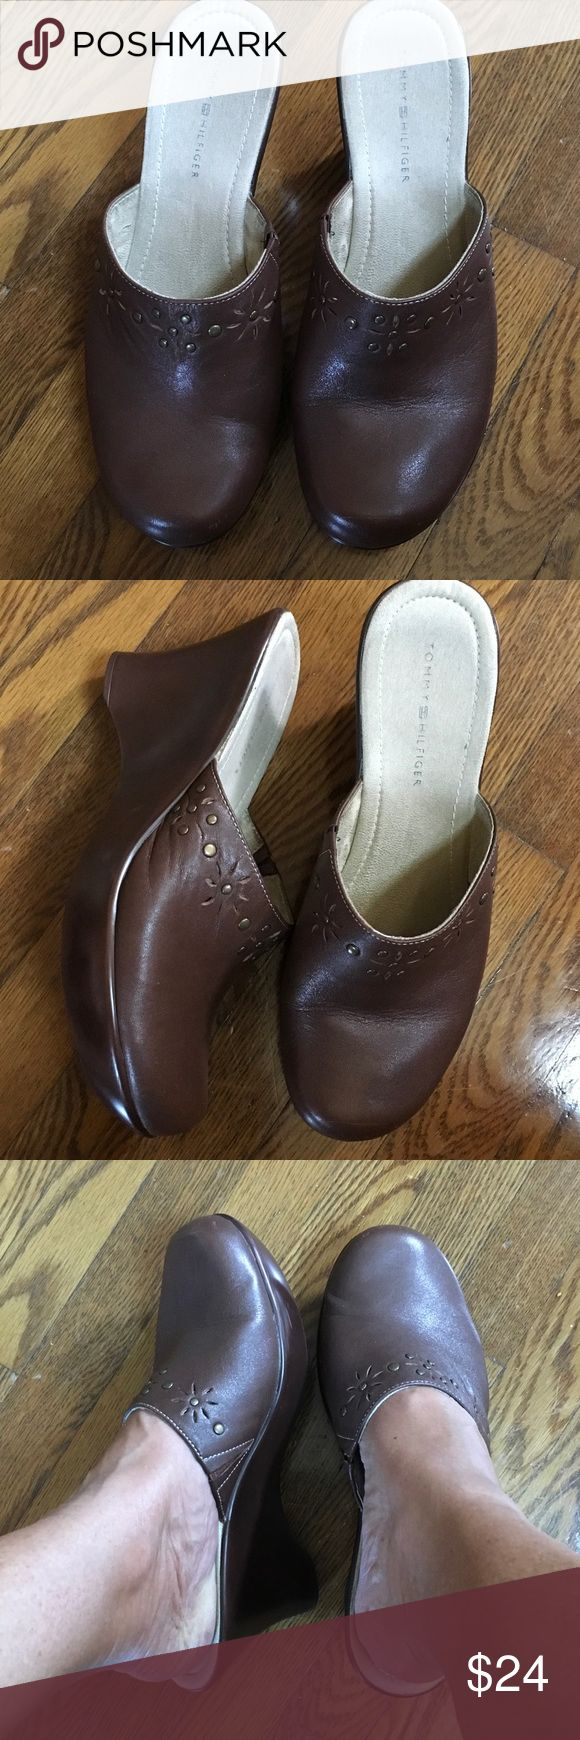 """Brown Tommy Hilfiger Mule Clogs great condition Gently worn still have many more miles to put on them! Great condition 3.5"""" heel very comfy Tommy Hilfiger Shoes Mules & Clogs"""